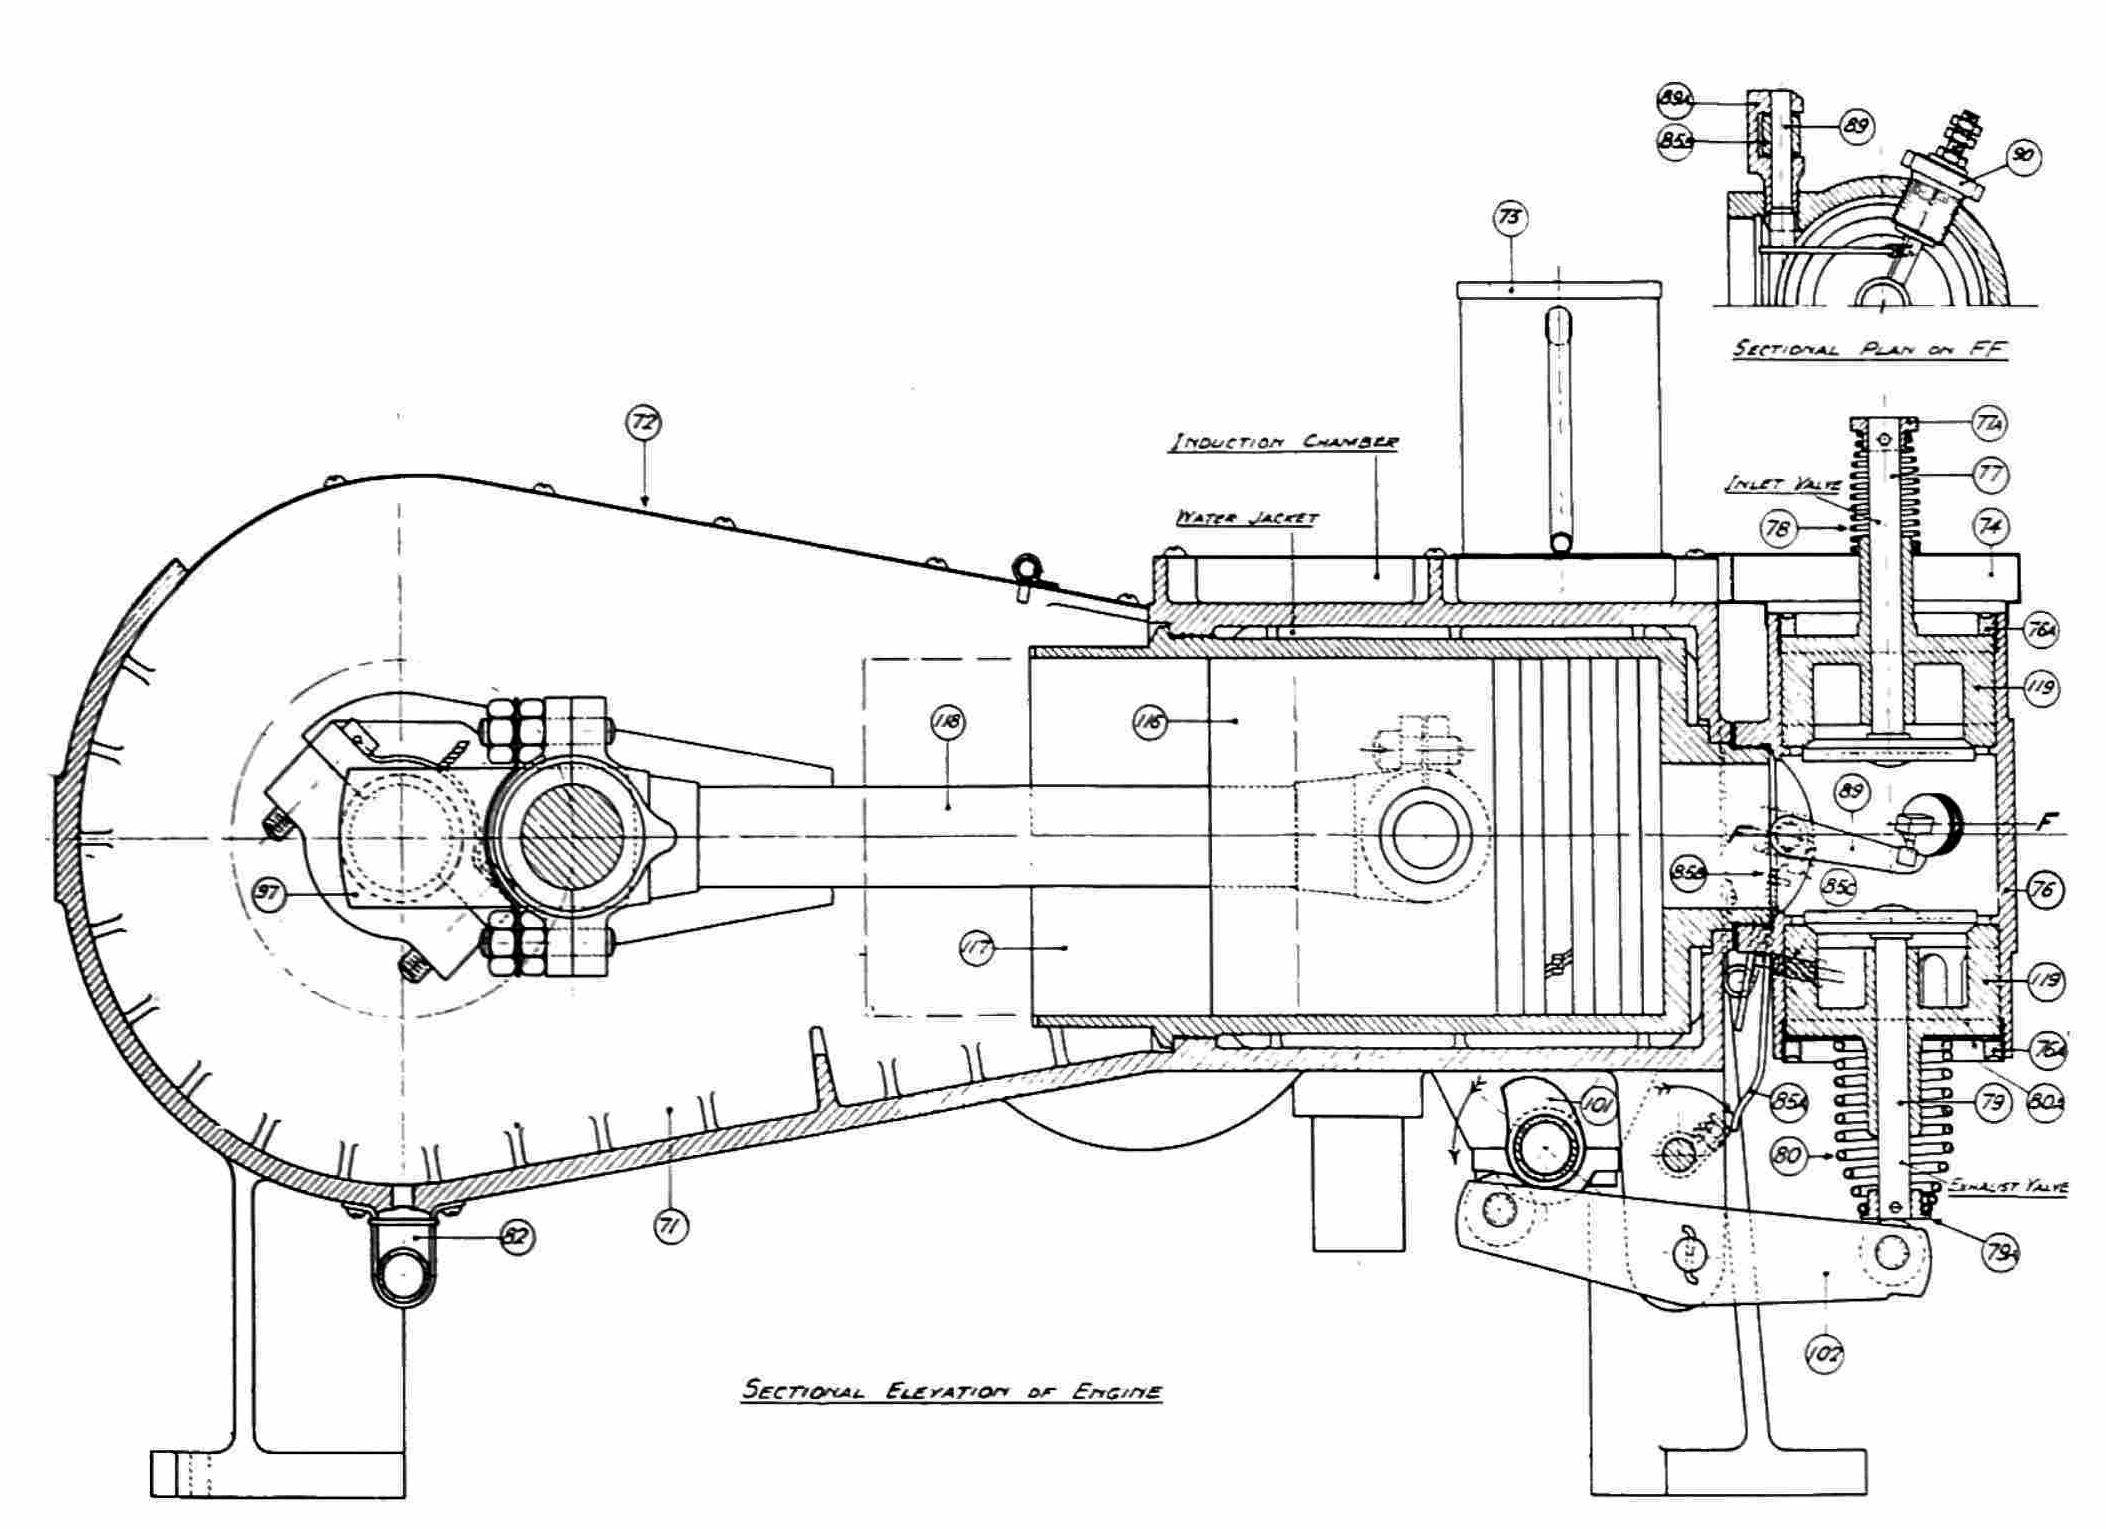 The Wright Brothers Engines And Their Design Leonard S